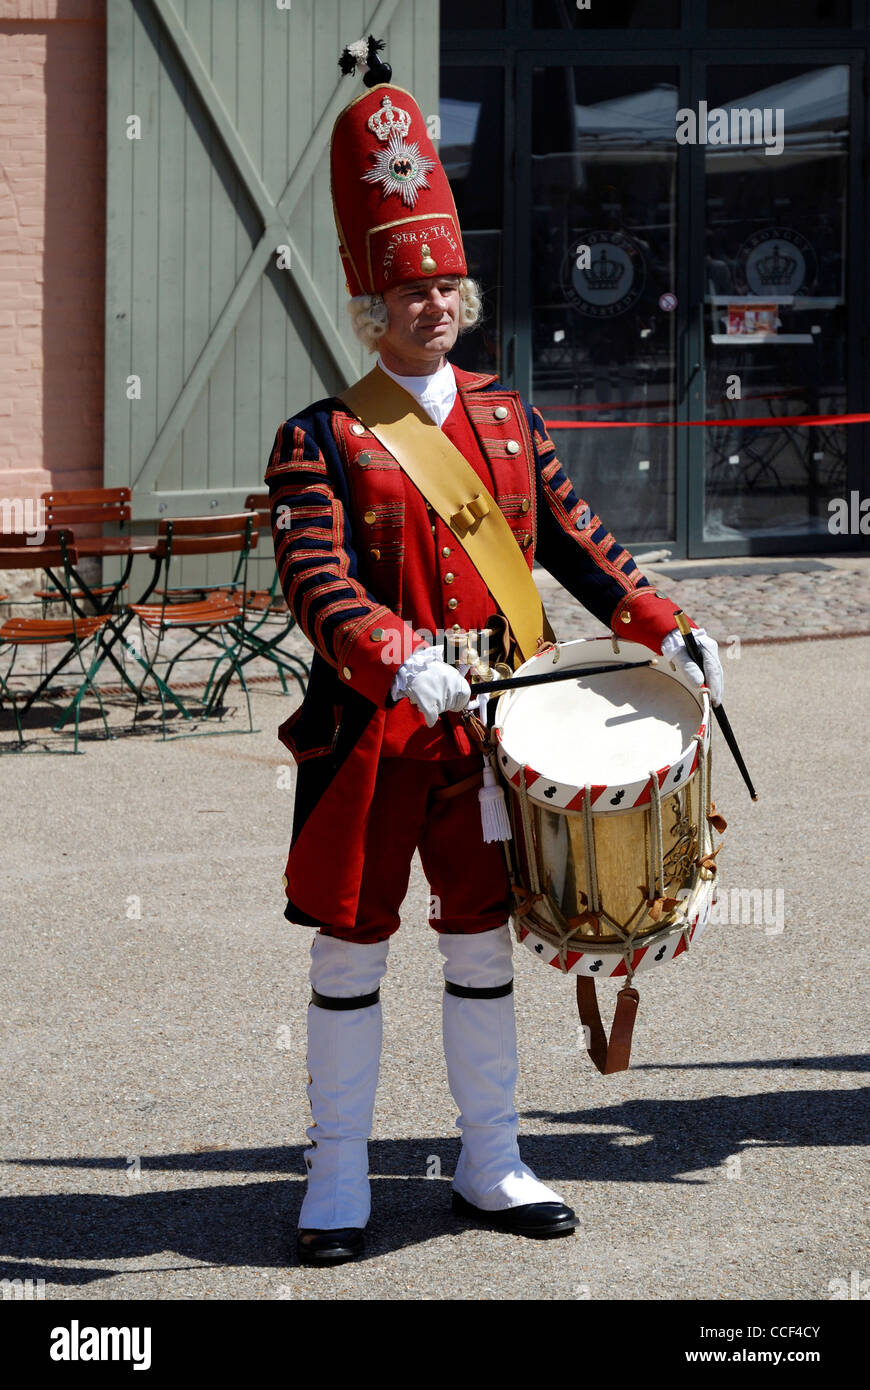 Drummer of the 'Potsdamer Riesengarde' in historical Prussian uniform on the Krongut Bornstedt in Potsdam. - Stock Image